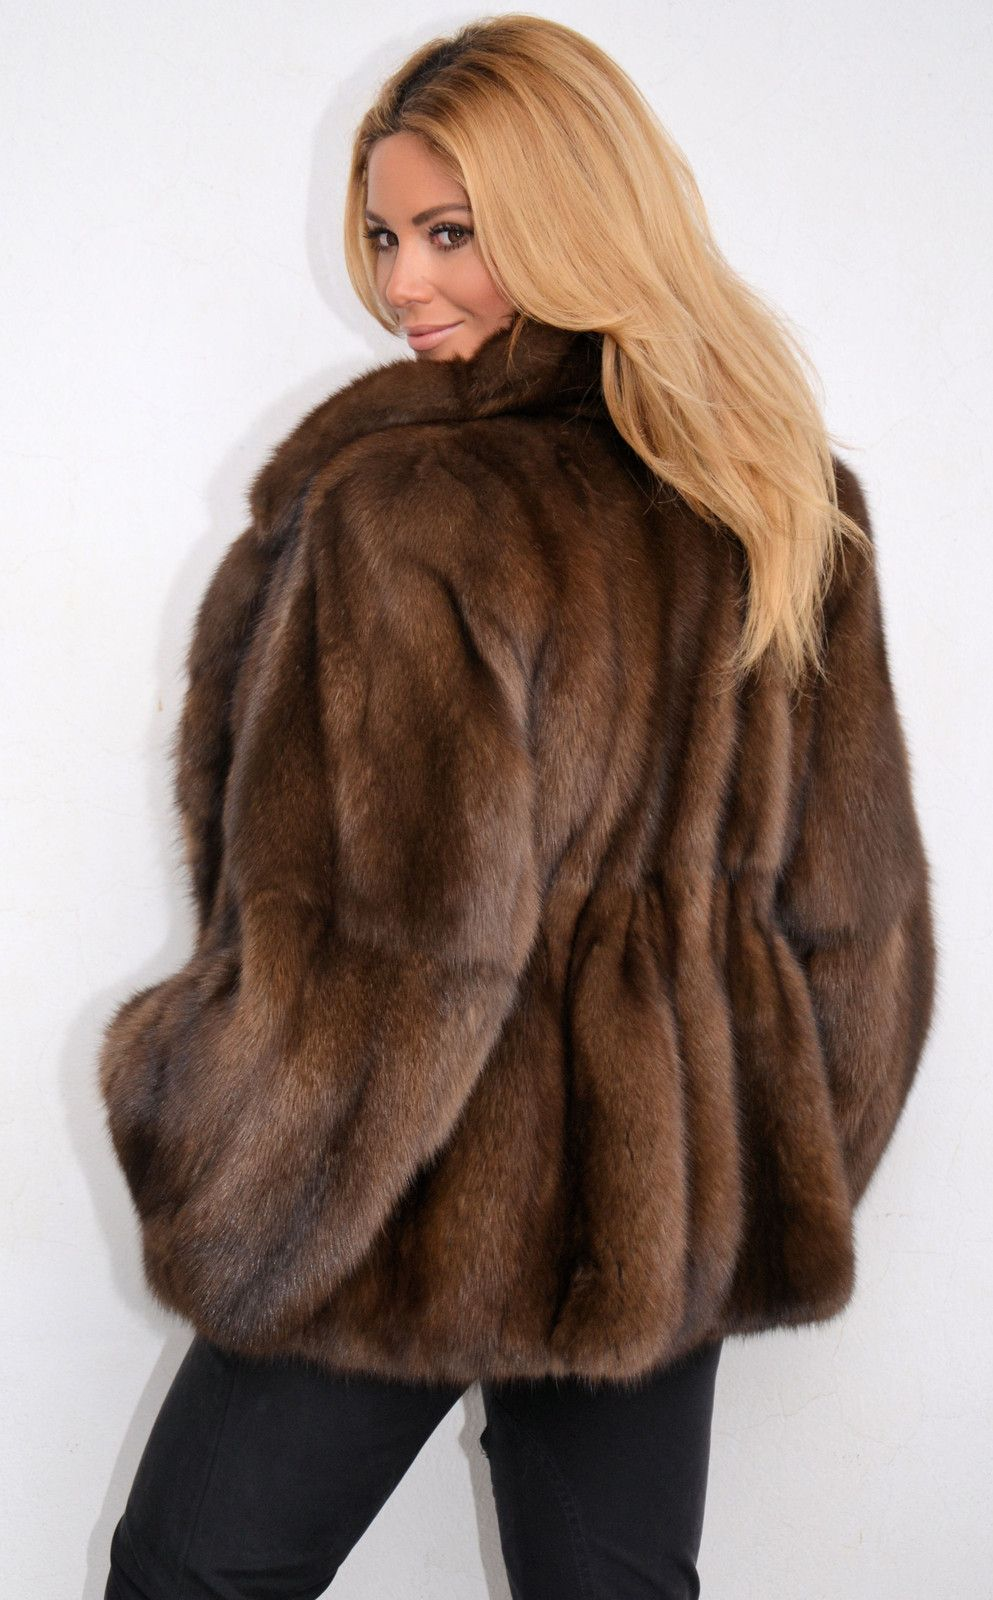 Details about OUTLET RUSSIAN SABLE JACKET FUR ZOBEL ZOBELMANTEL